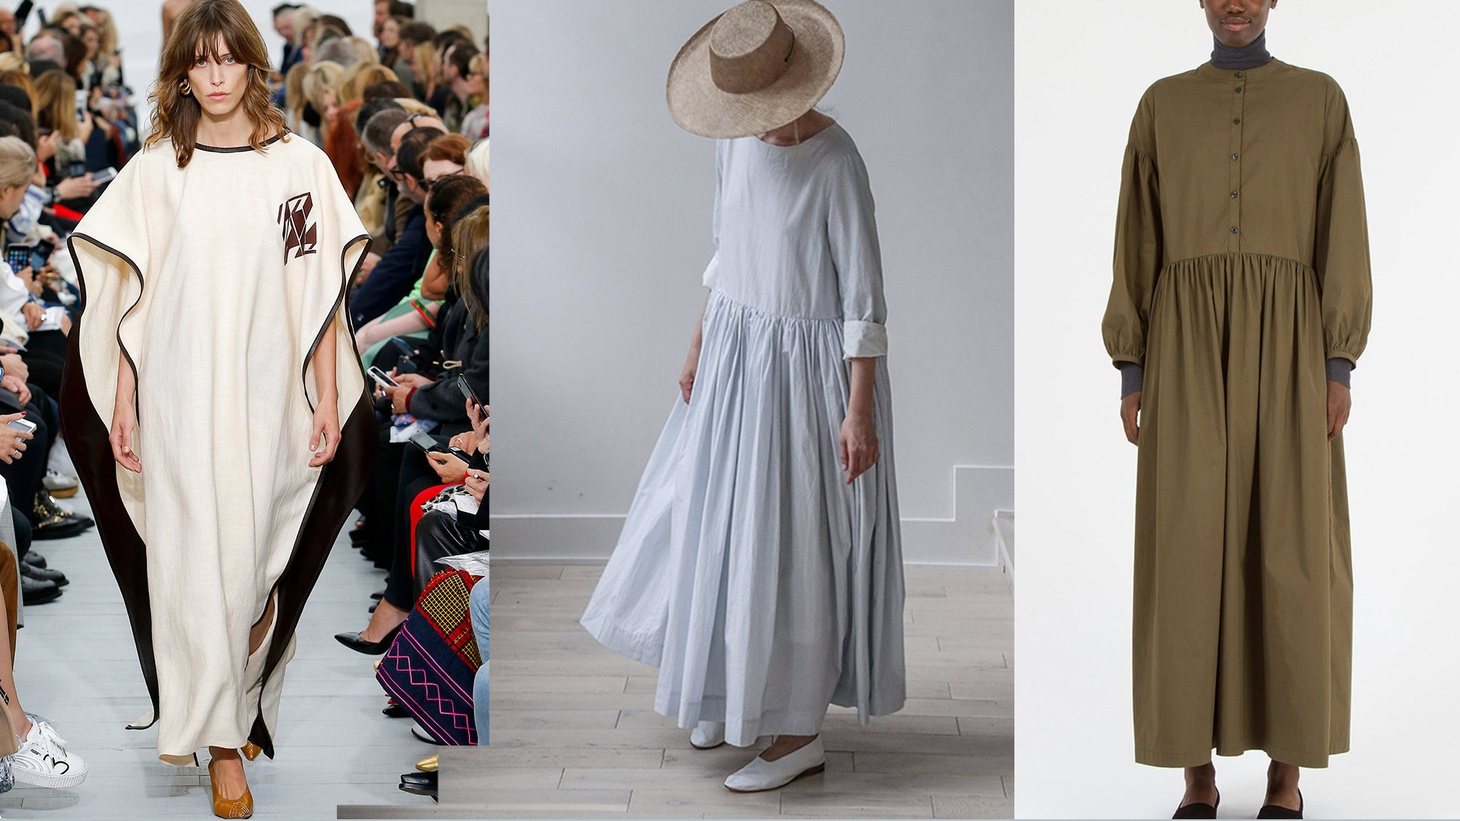 Examples of modest fashion in high design  (L-R) Céline, Rennes, Creatures of Comfort   Should women consider their clothing choices when working in the world of men? That's been one of the many heated topics raised by the current debate…